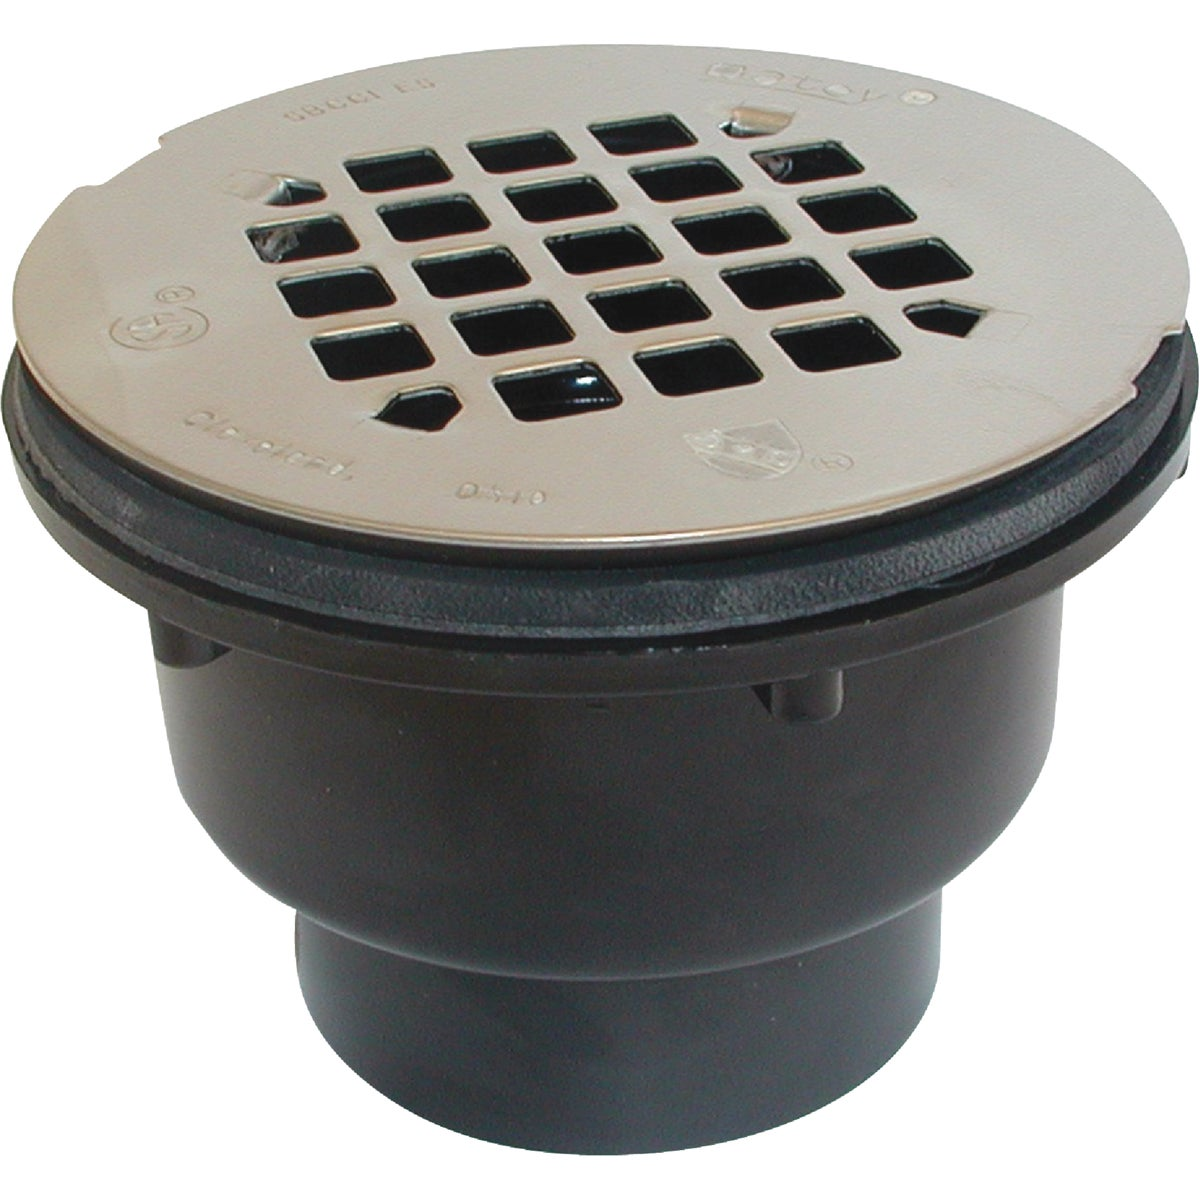 2-PART ABS SHOWER DRAIN - 42044 by Oatey Scs